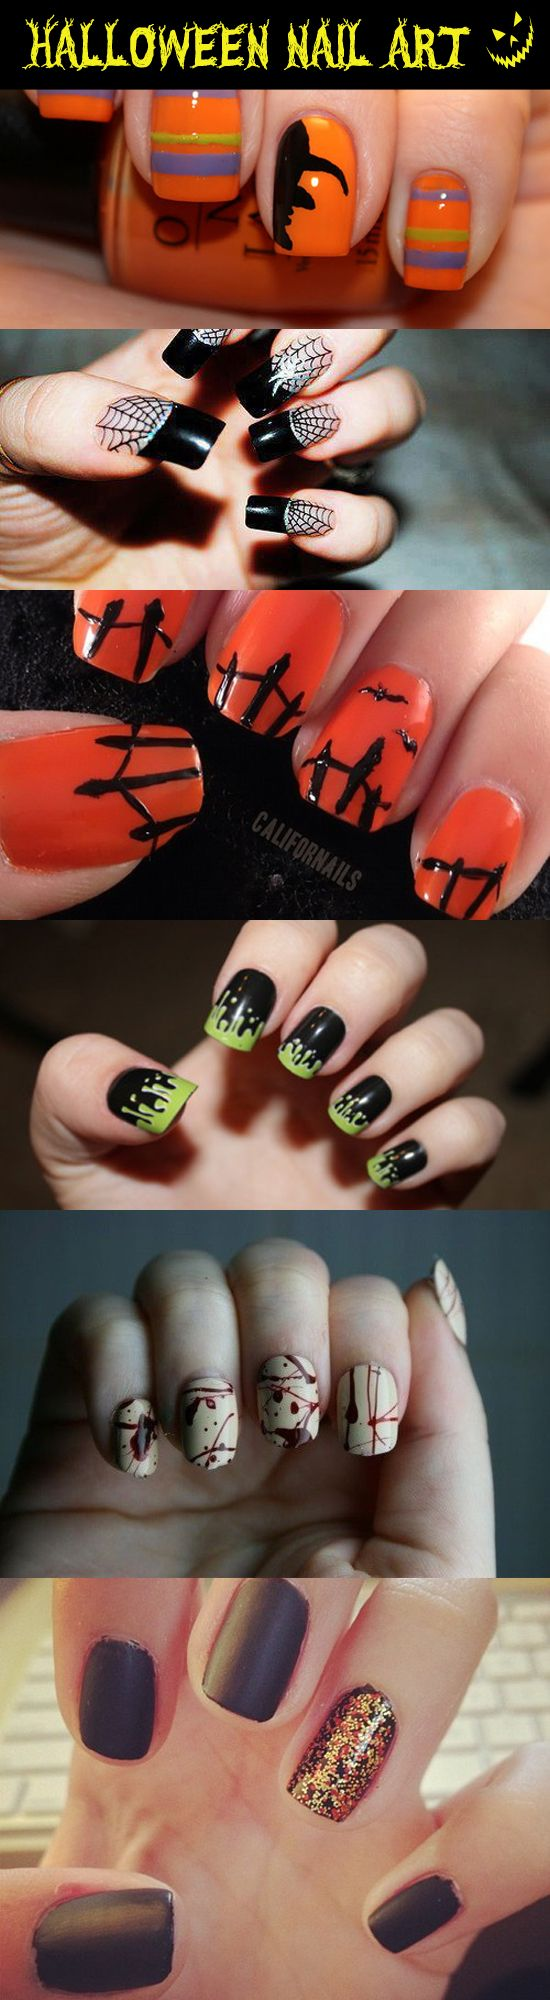 Halloween nail art ideas unique halloween nails nail art halloween nail art ideas unique halloween nails nail art designs 2012 online fashion prinsesfo Choice Image